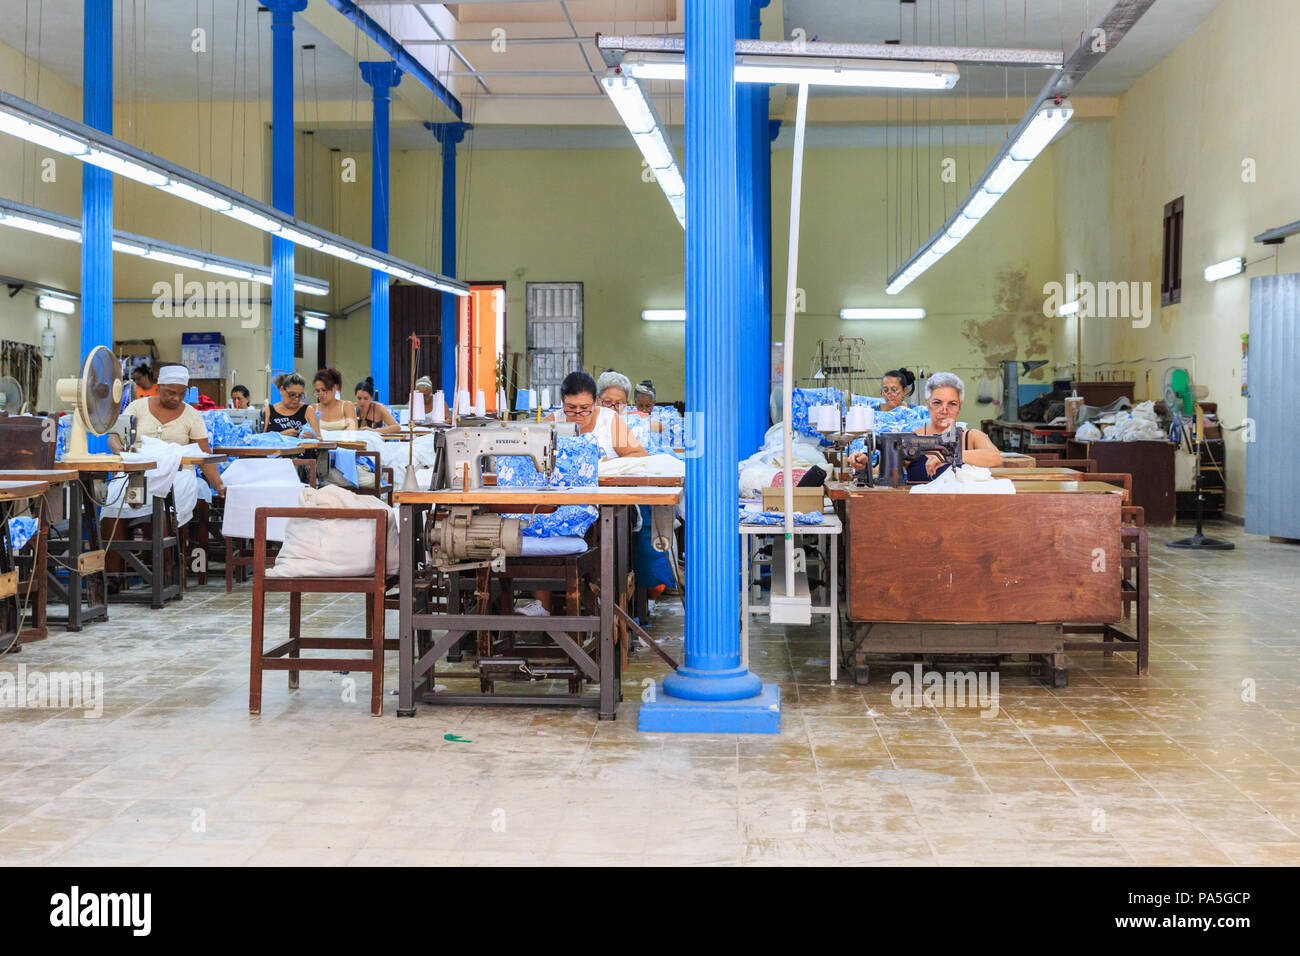 Cuban women sewing on machines in a textile production line and factory, Havana, Cuba - Stock Image